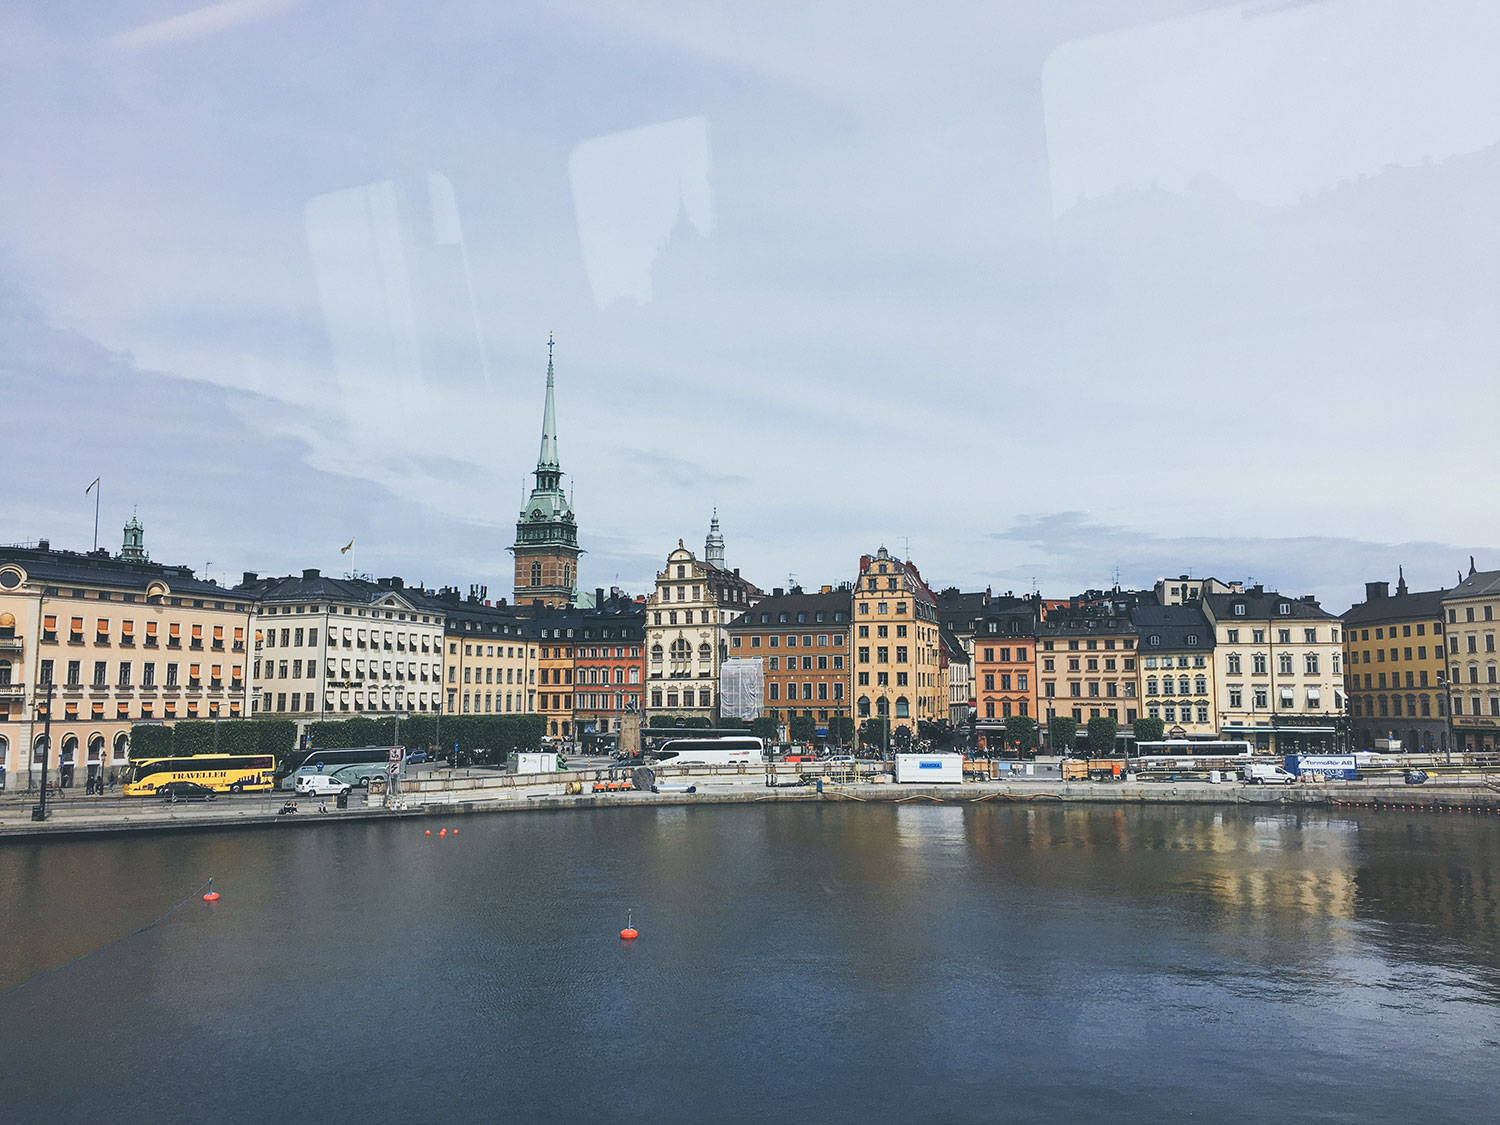 travel blogger, traveling, travel, stockholm, europe, trip, vacation